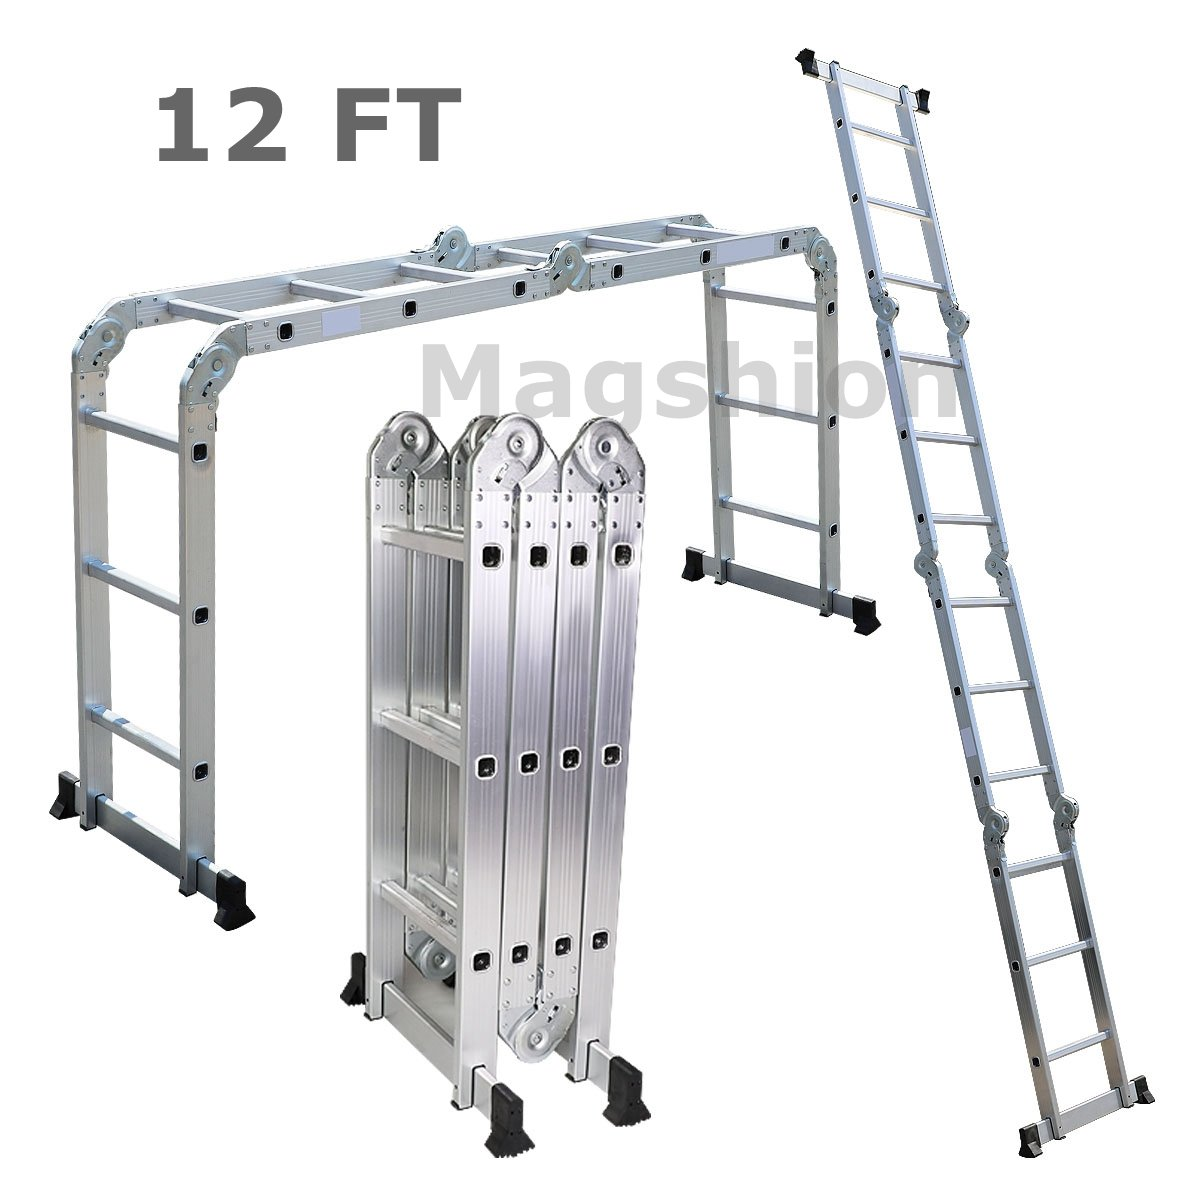 Multi Purpose Aluminum Ladder Step Scaffold Ladder Extendable Platform (12.17 FT)